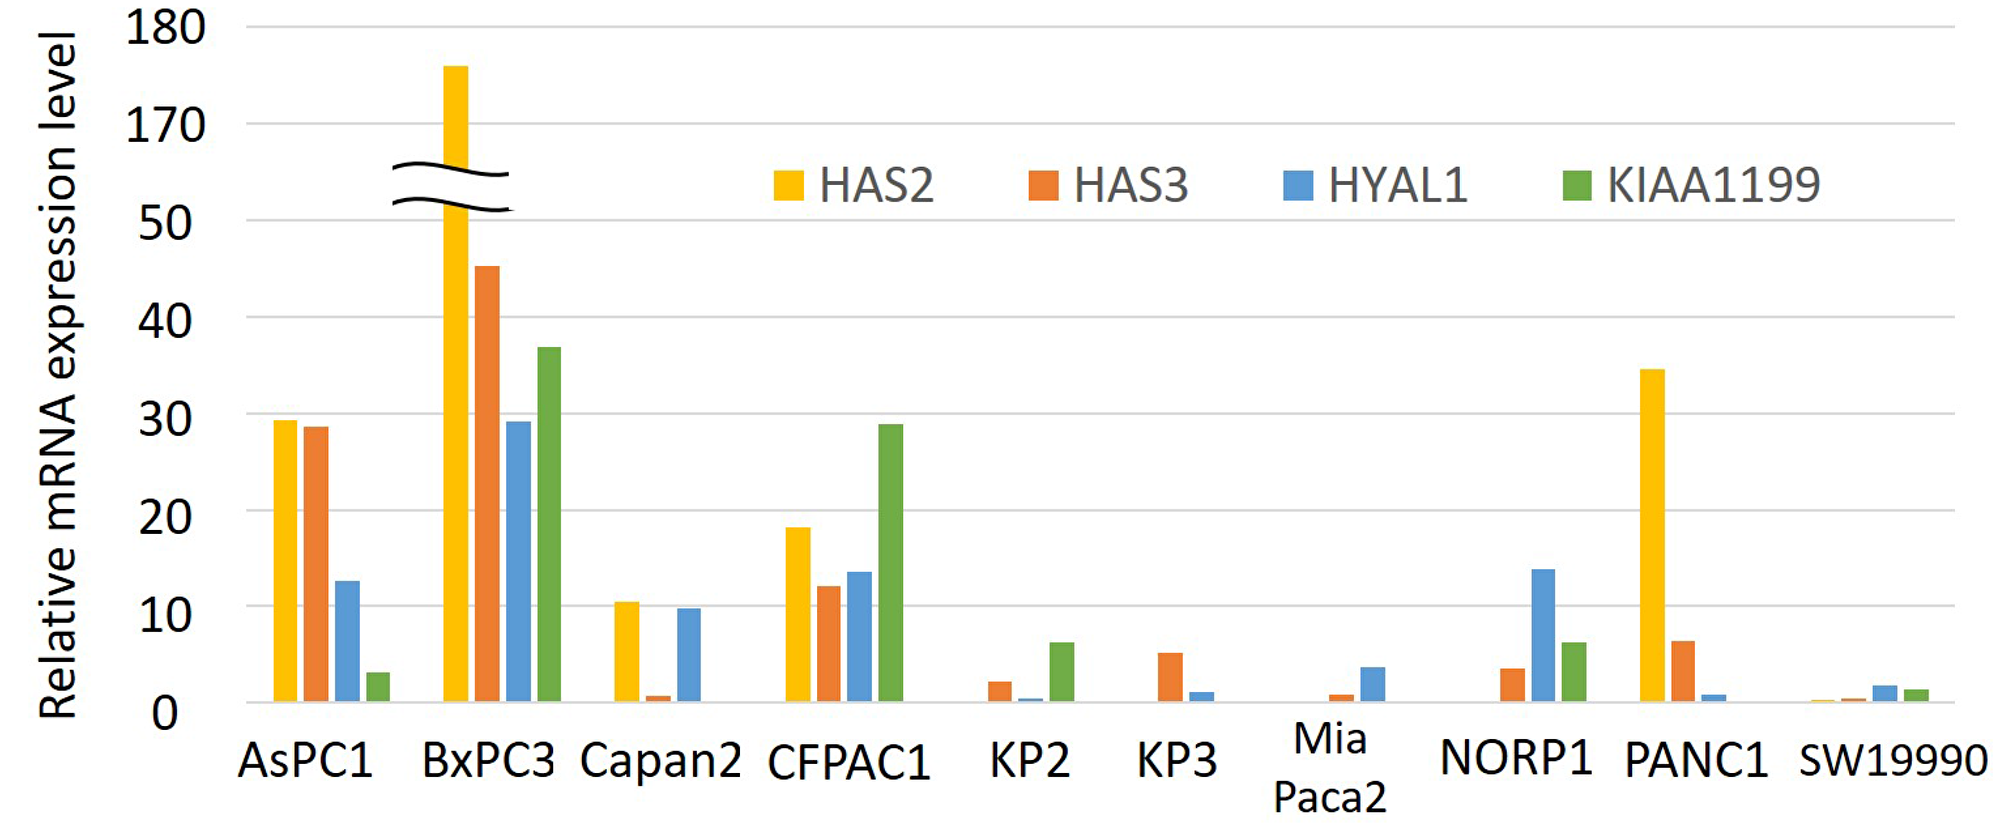 Relative mRNA expression levels of HAS2, HAS3, HYAL1, and KIAA1199 in a panel of 10 PDAC cell lines.